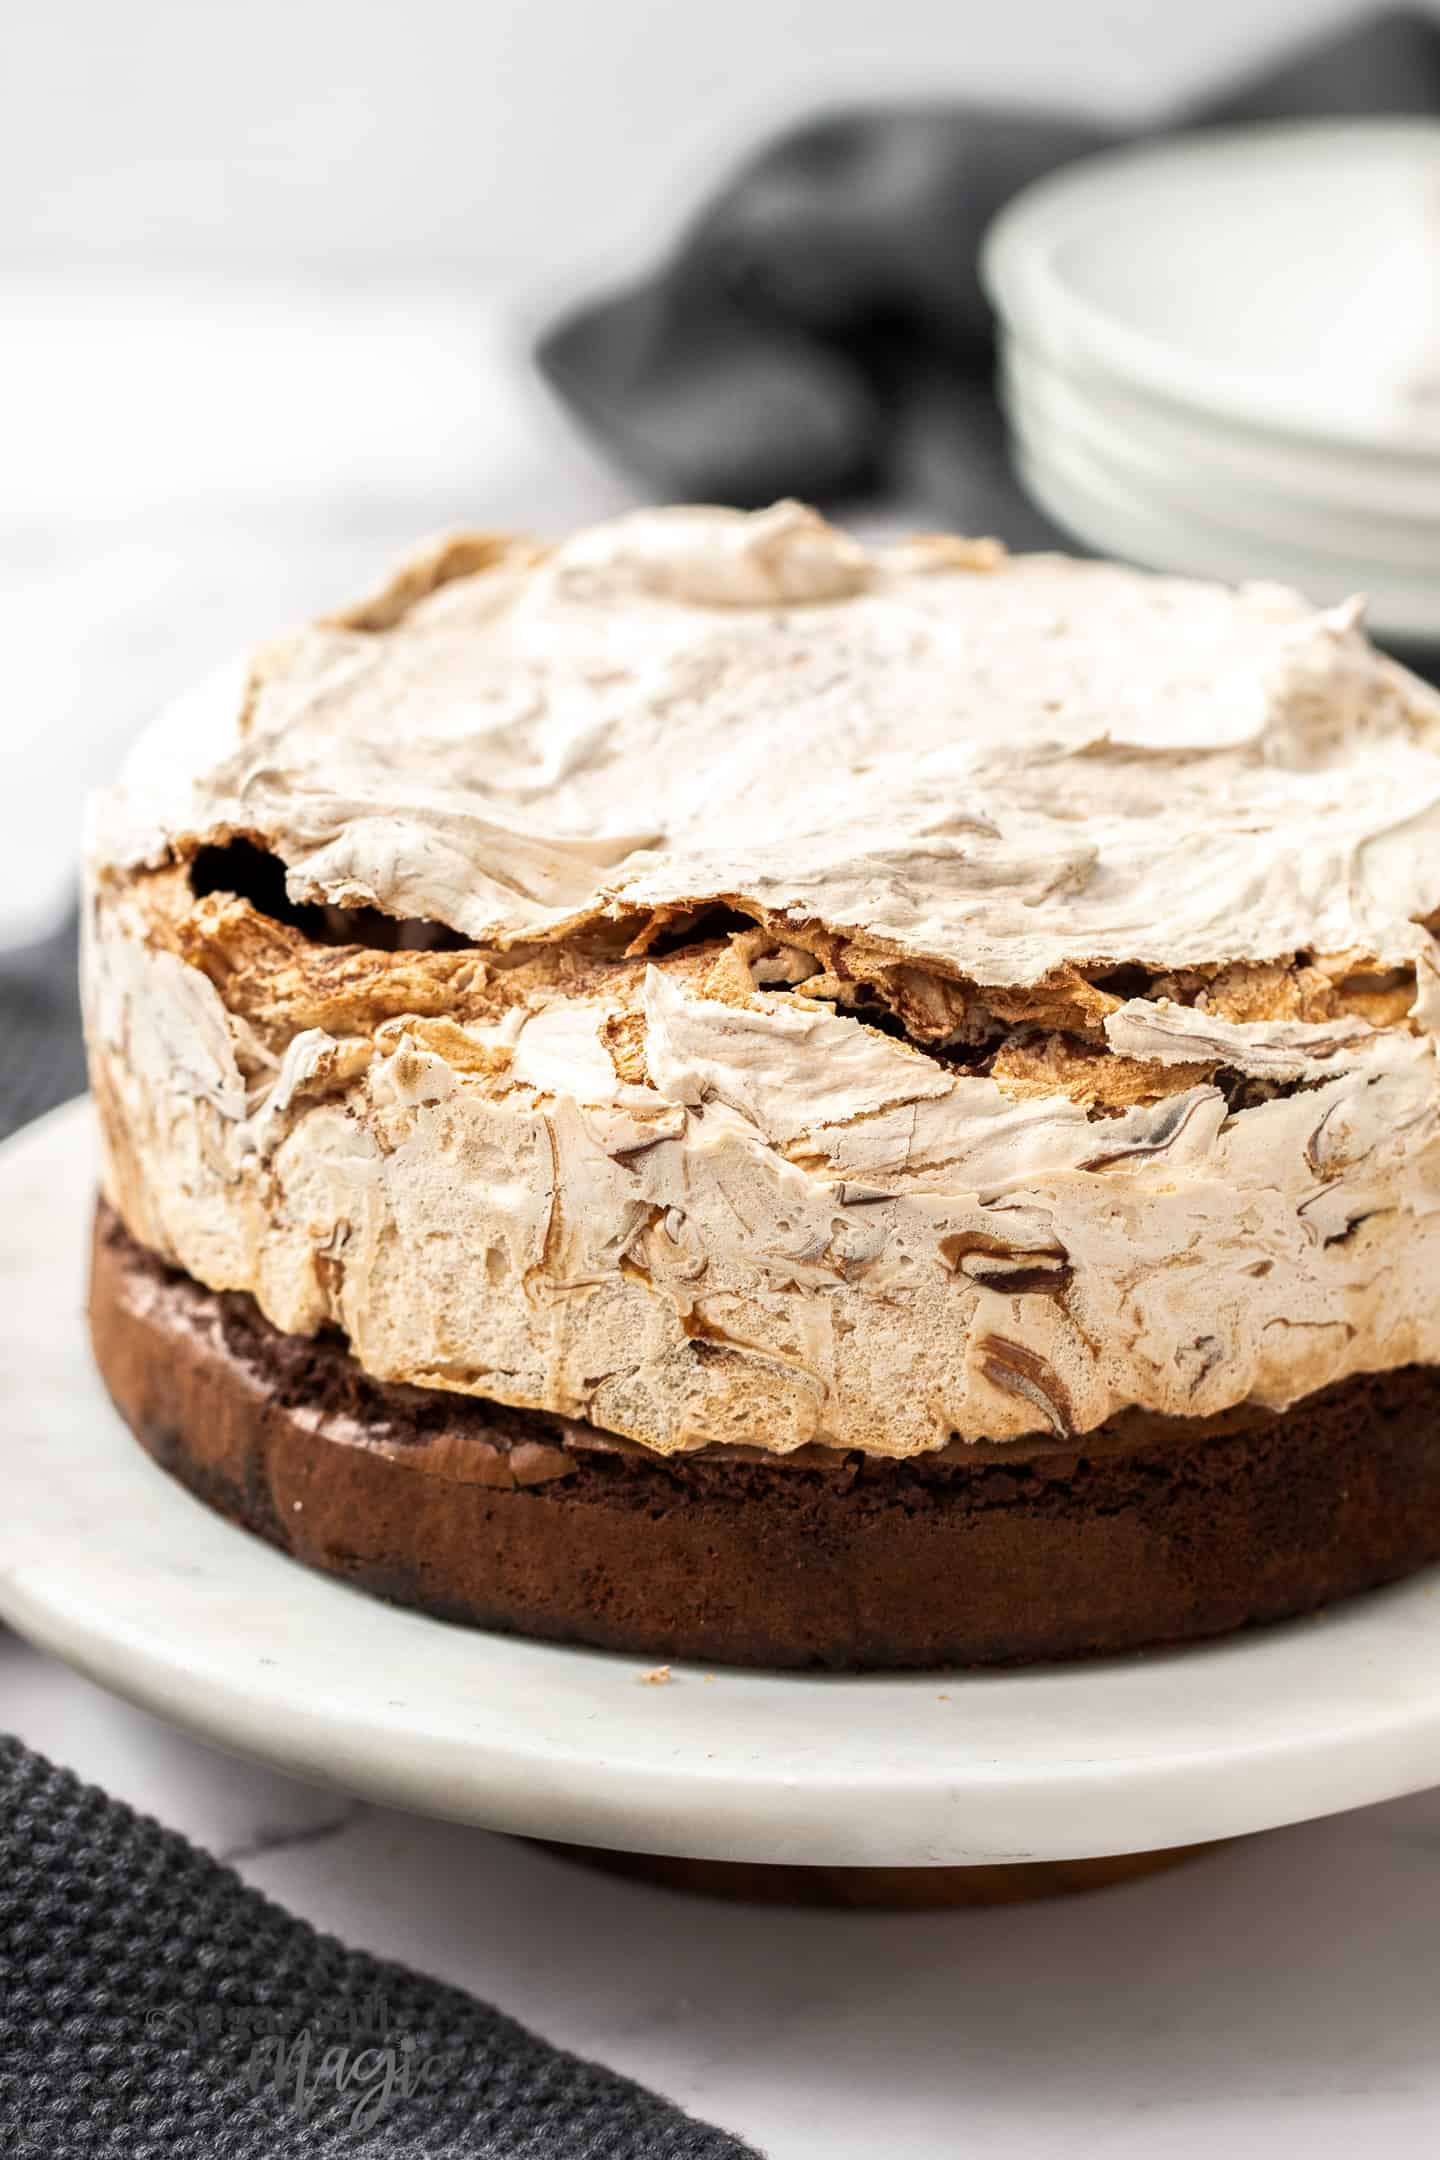 Closeup of a full chocolate meringue cake on a marble platter.